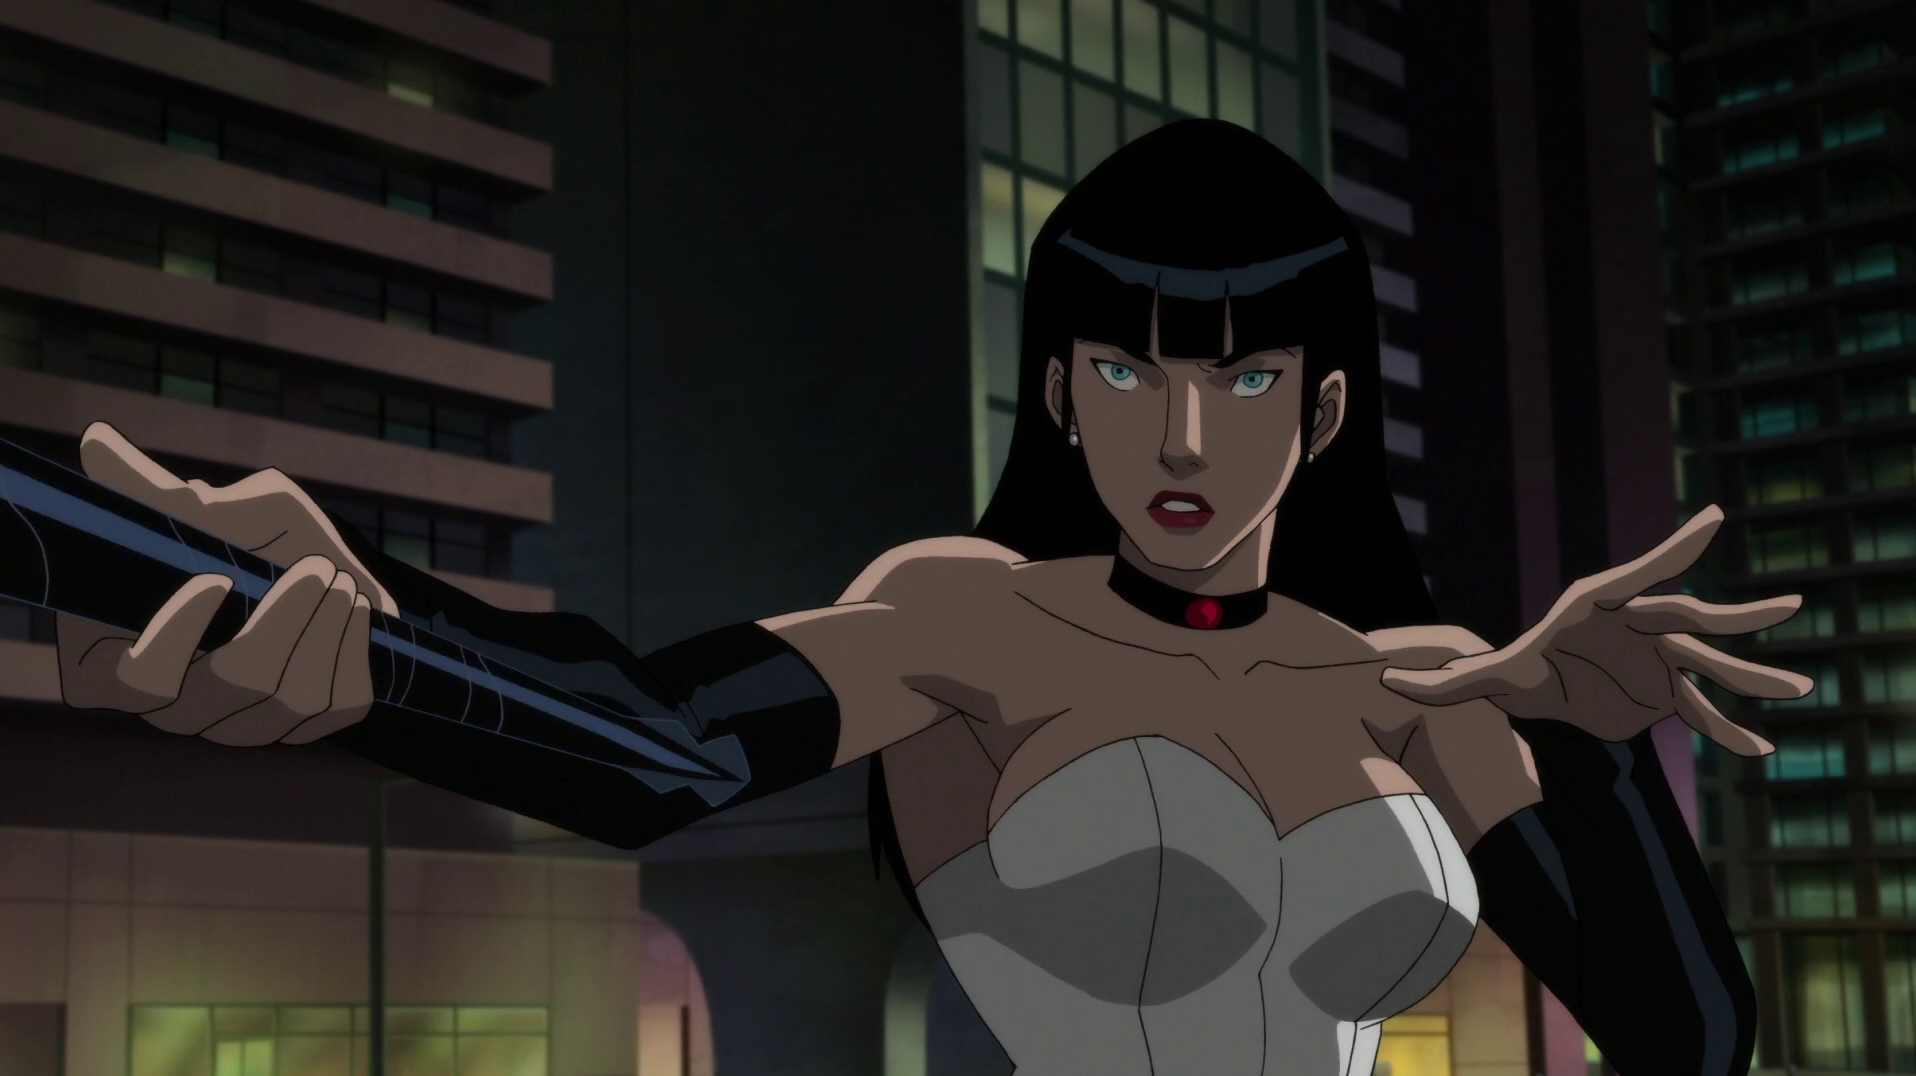 zatanna young justice toy - HD1916×1076